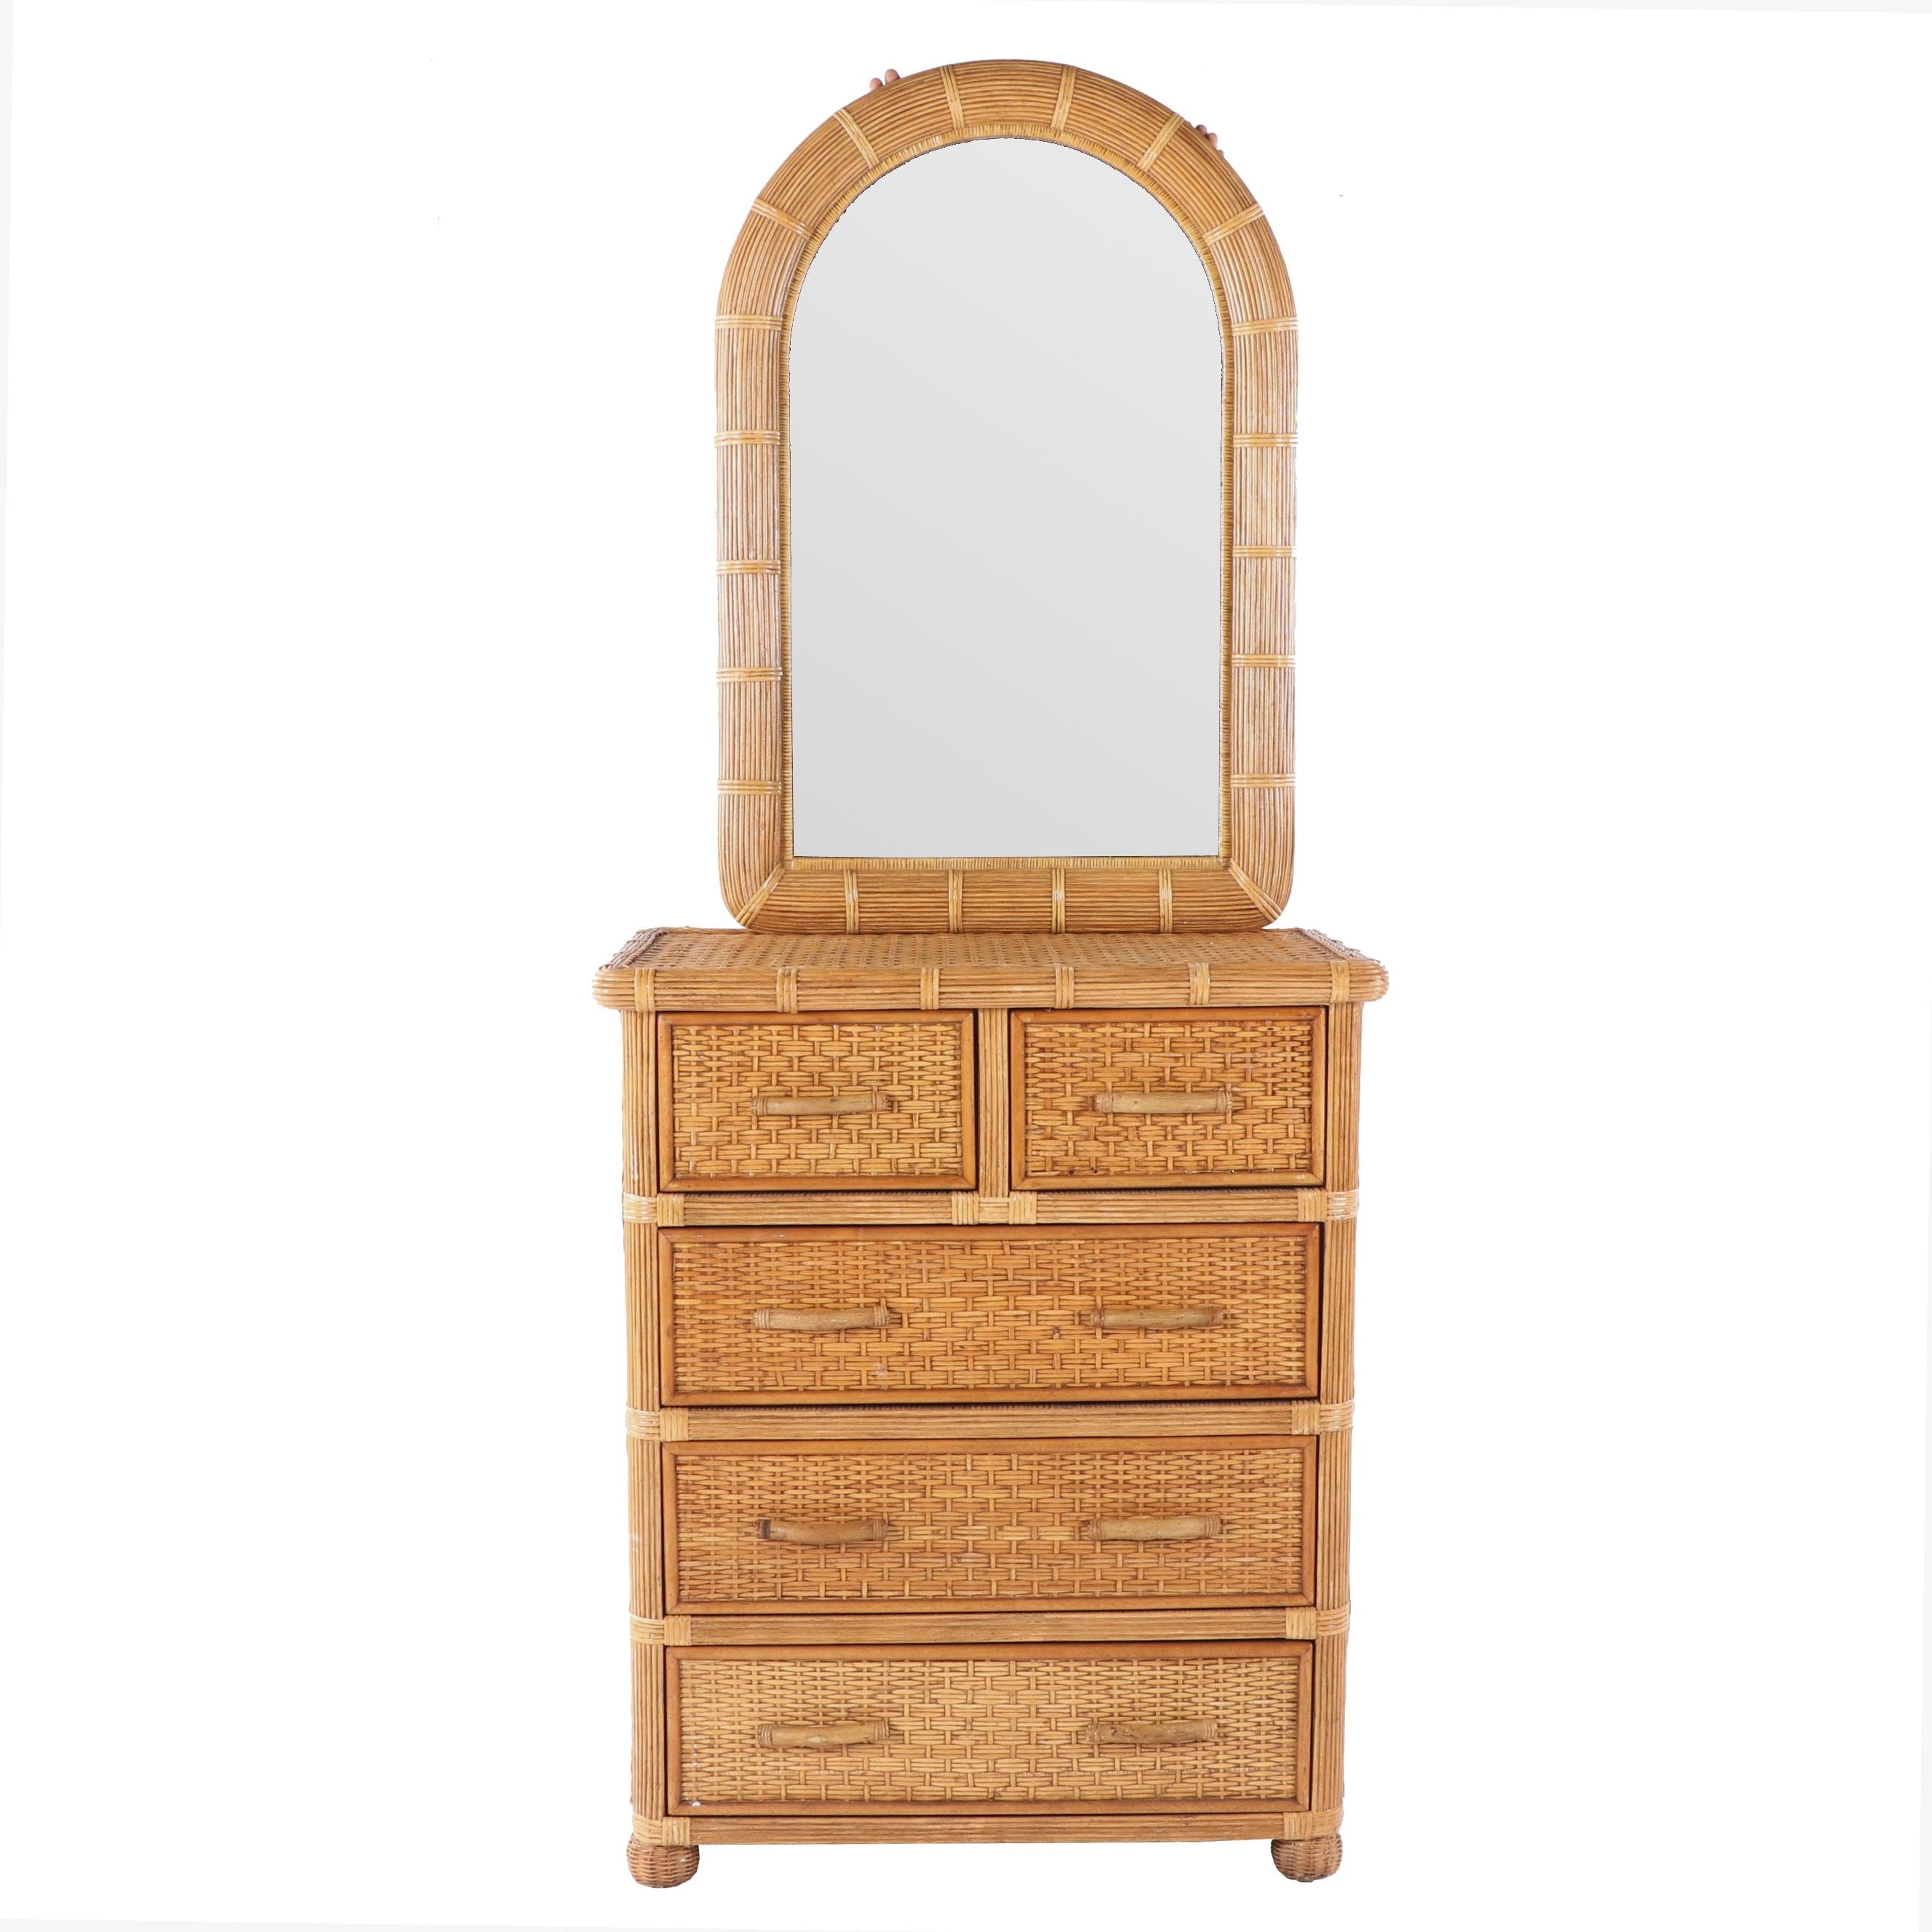 Rattan and Wicker Weave Five-Drawer Chest with Mirror, 21st Century